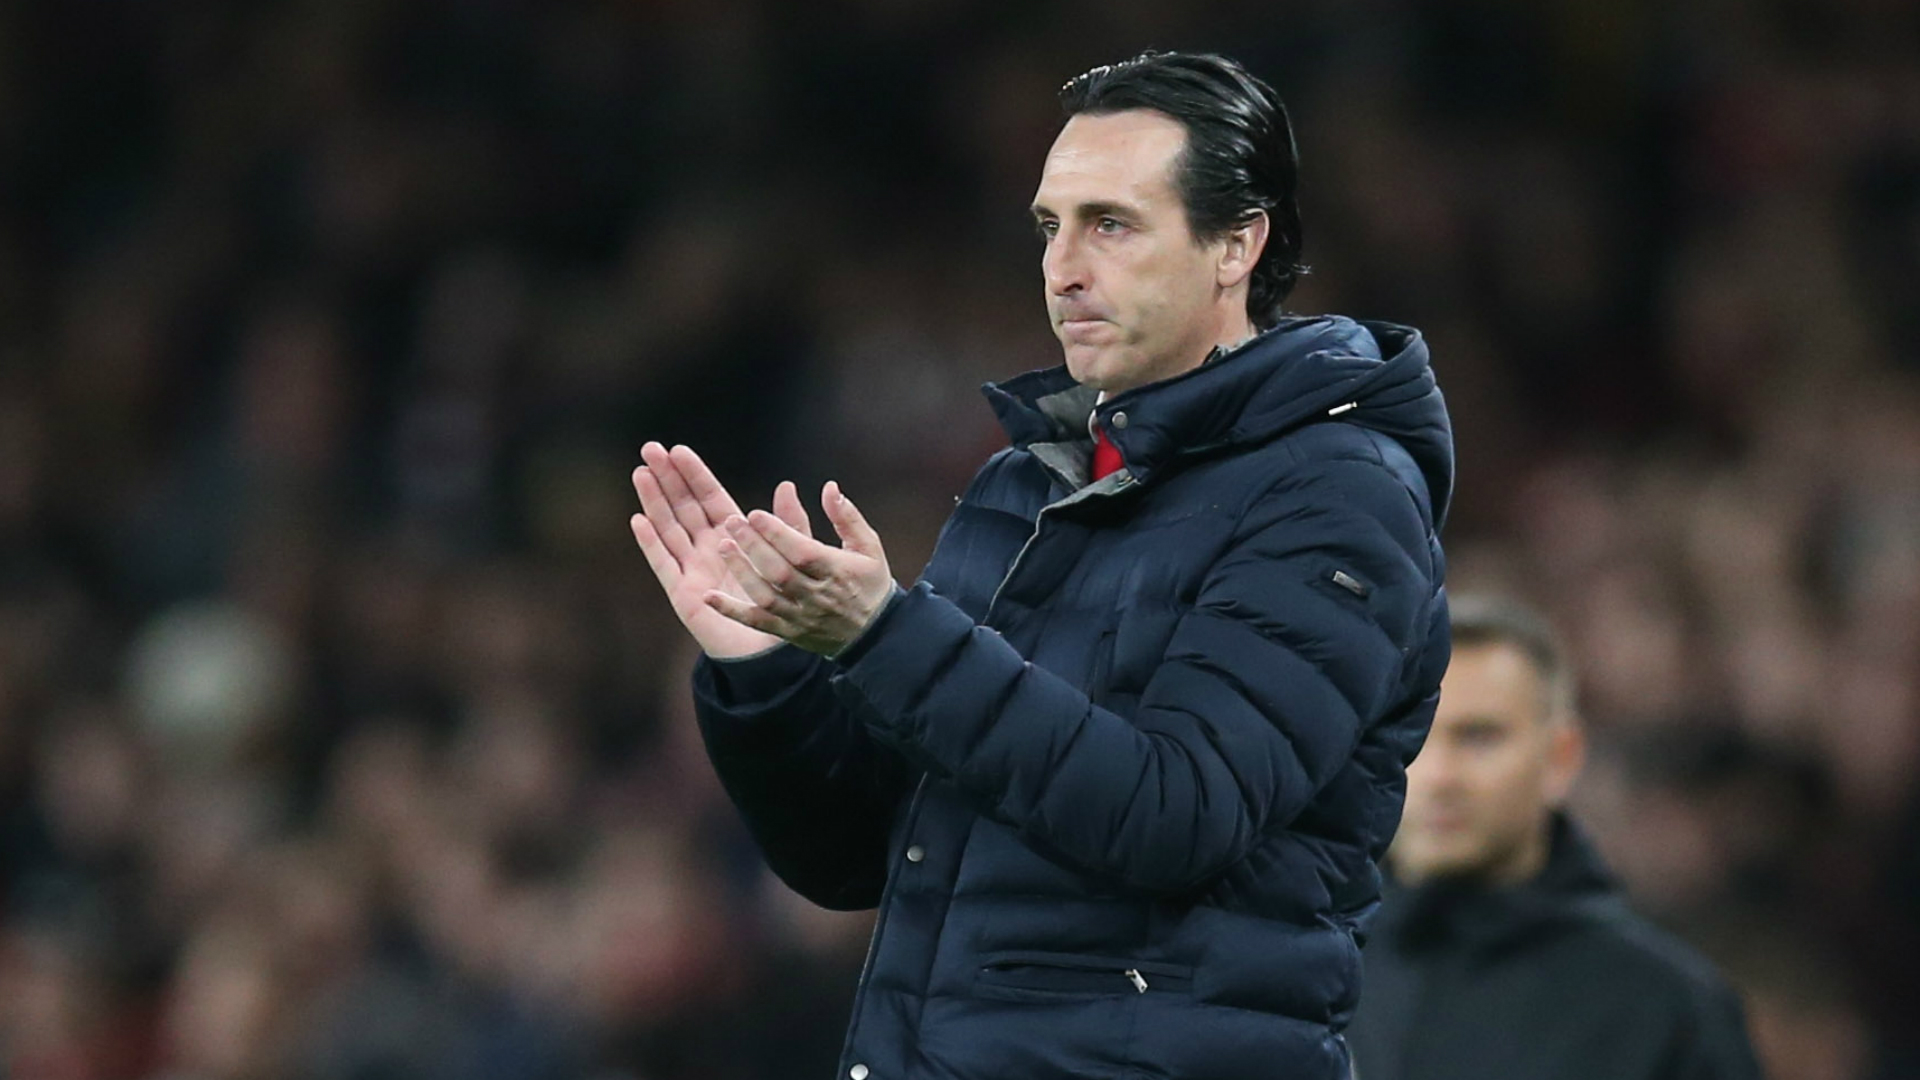 Arsenal followed up beating Manchester United by booking a Europa League quarter-final place, but Unai Emery is demanding even more.